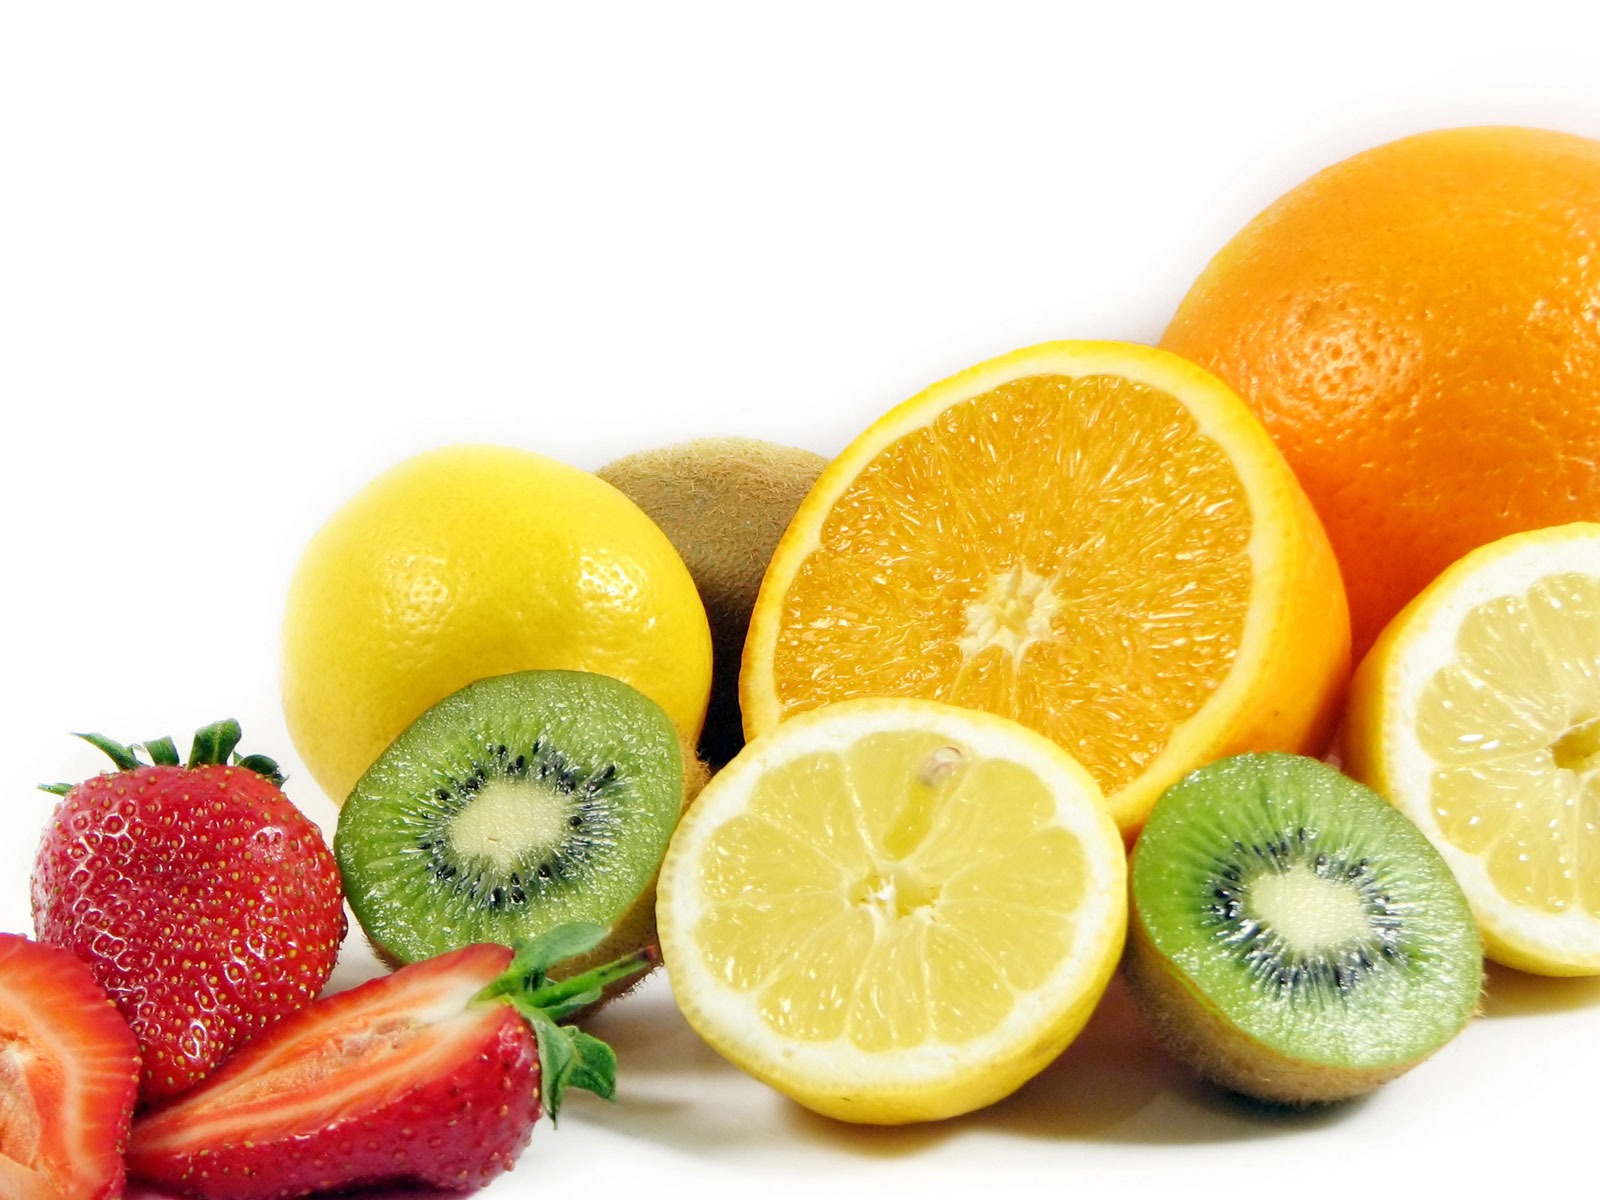 http://2.bp.blogspot.com/-ya7leTmos1s/T7jN7gZx_GI/AAAAAAAAJQg/-0TeEaivUuc/s1600/Assorted__Fresh_Fruits_Wallpapers.jpg